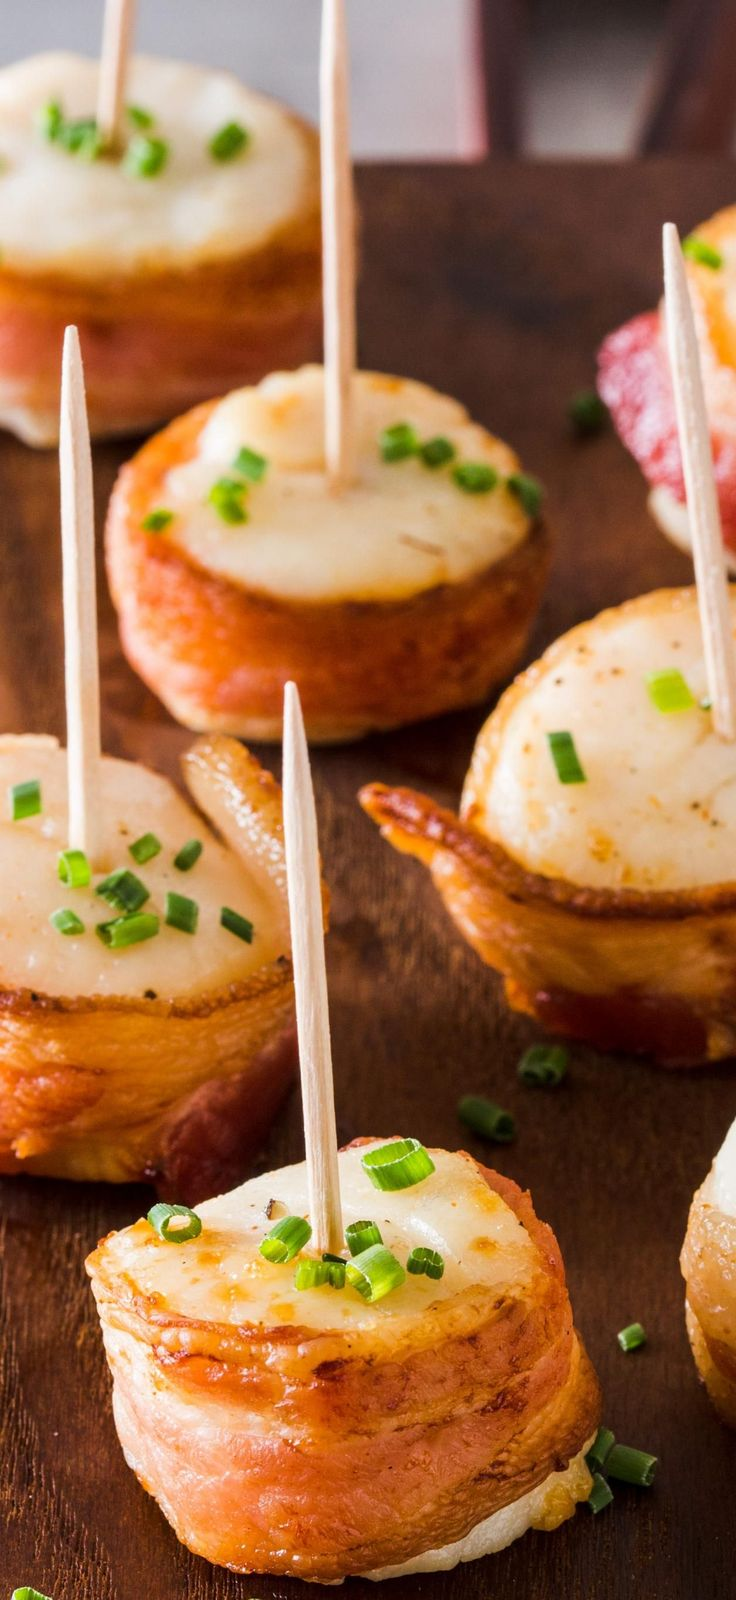 Broiled Bacon-Wrapped Sea Scallops. Balancing flavor and ensuring each component is cooked to perfection can be a real challenge.